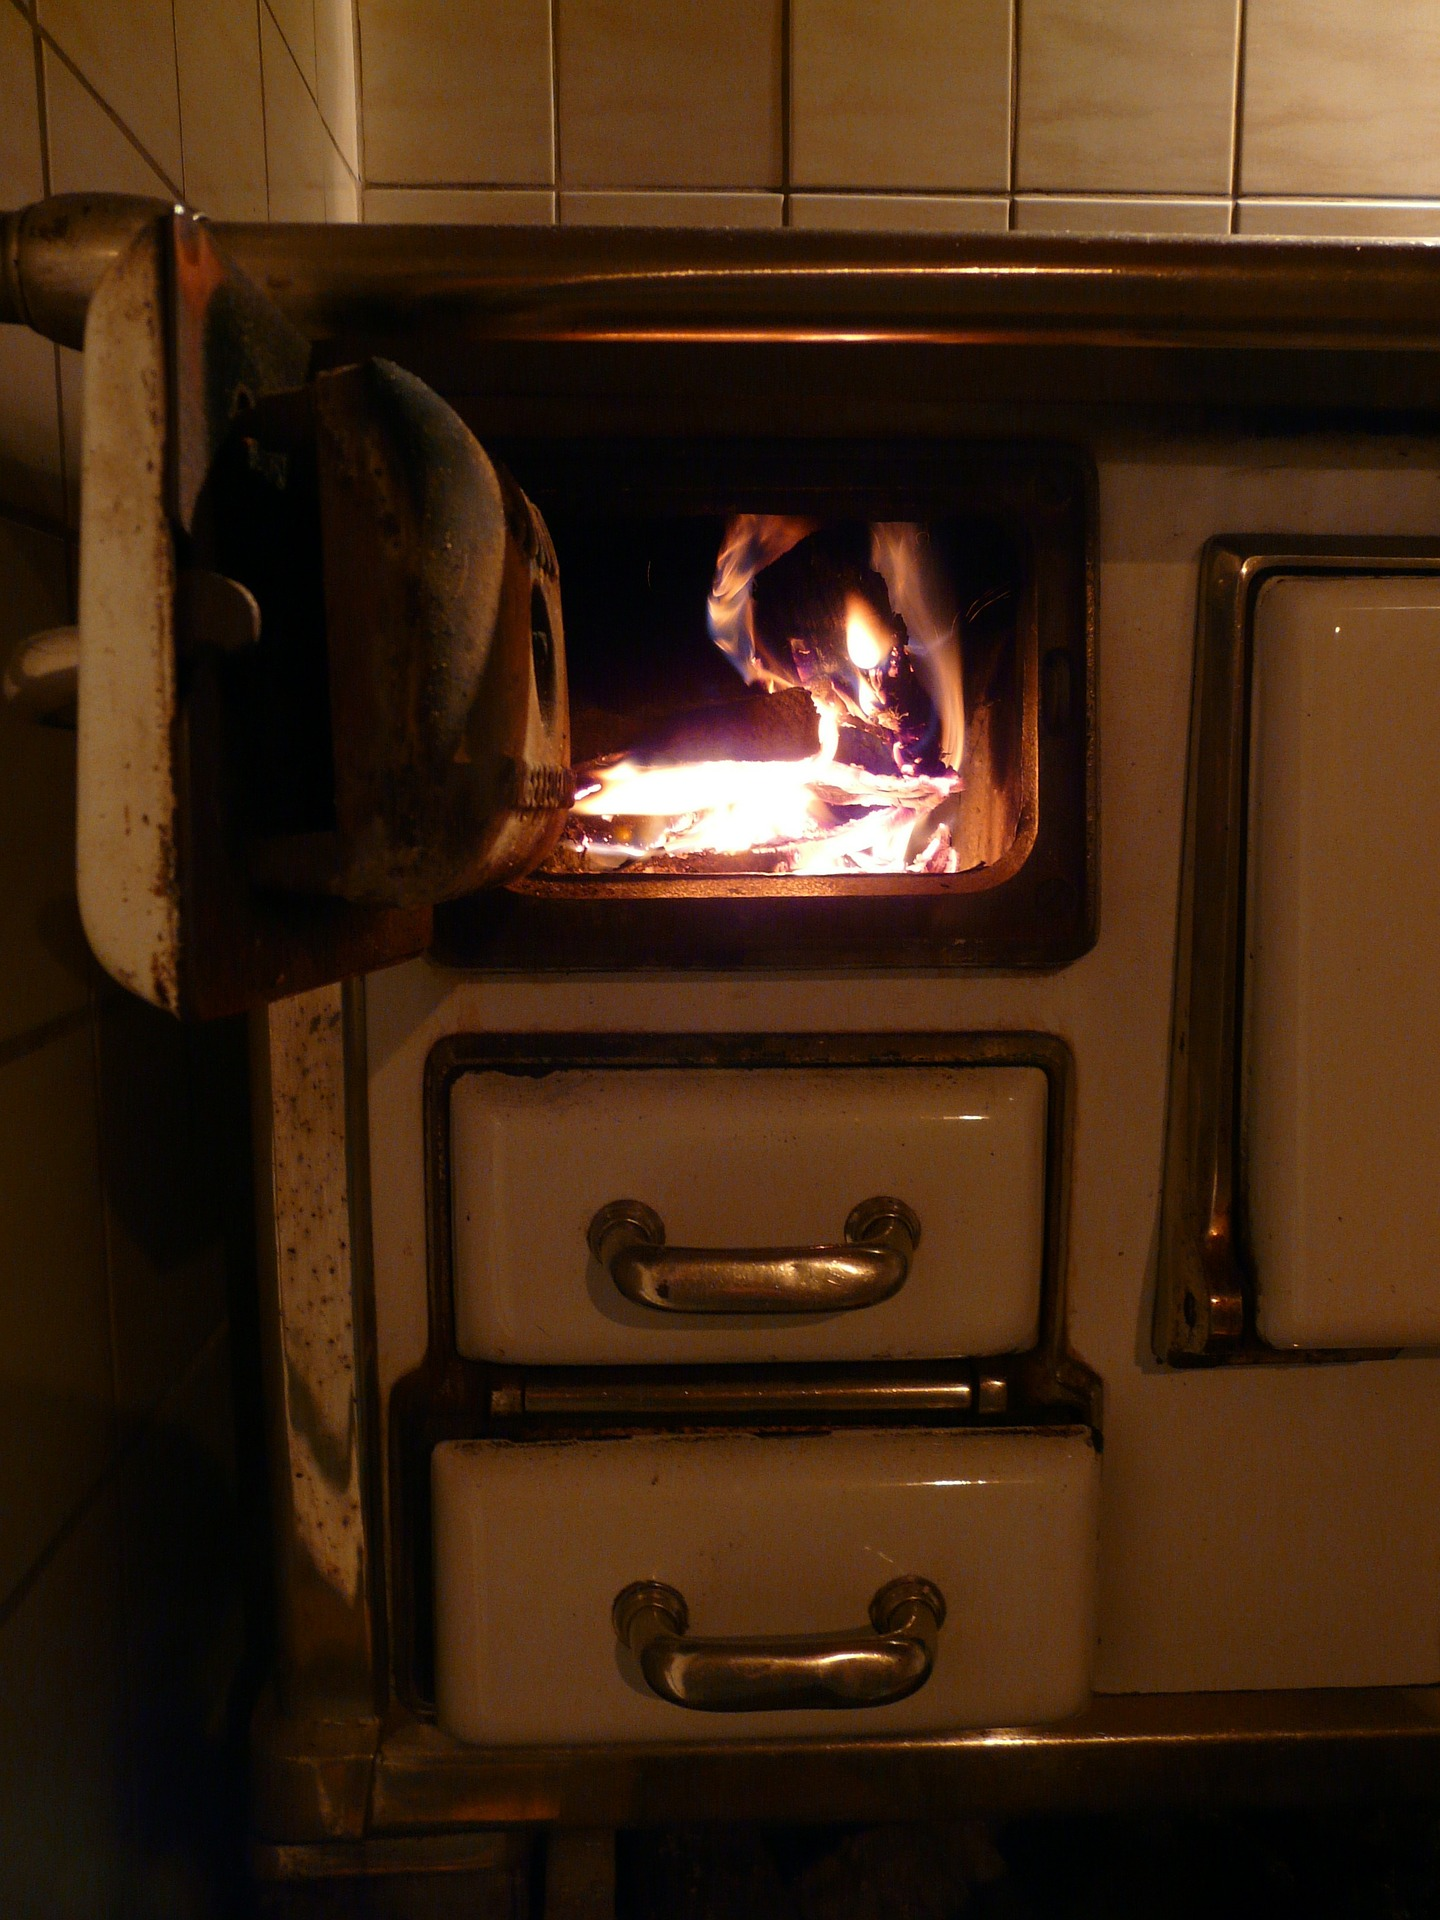 Antique wood stove used for creating recipes for winter.